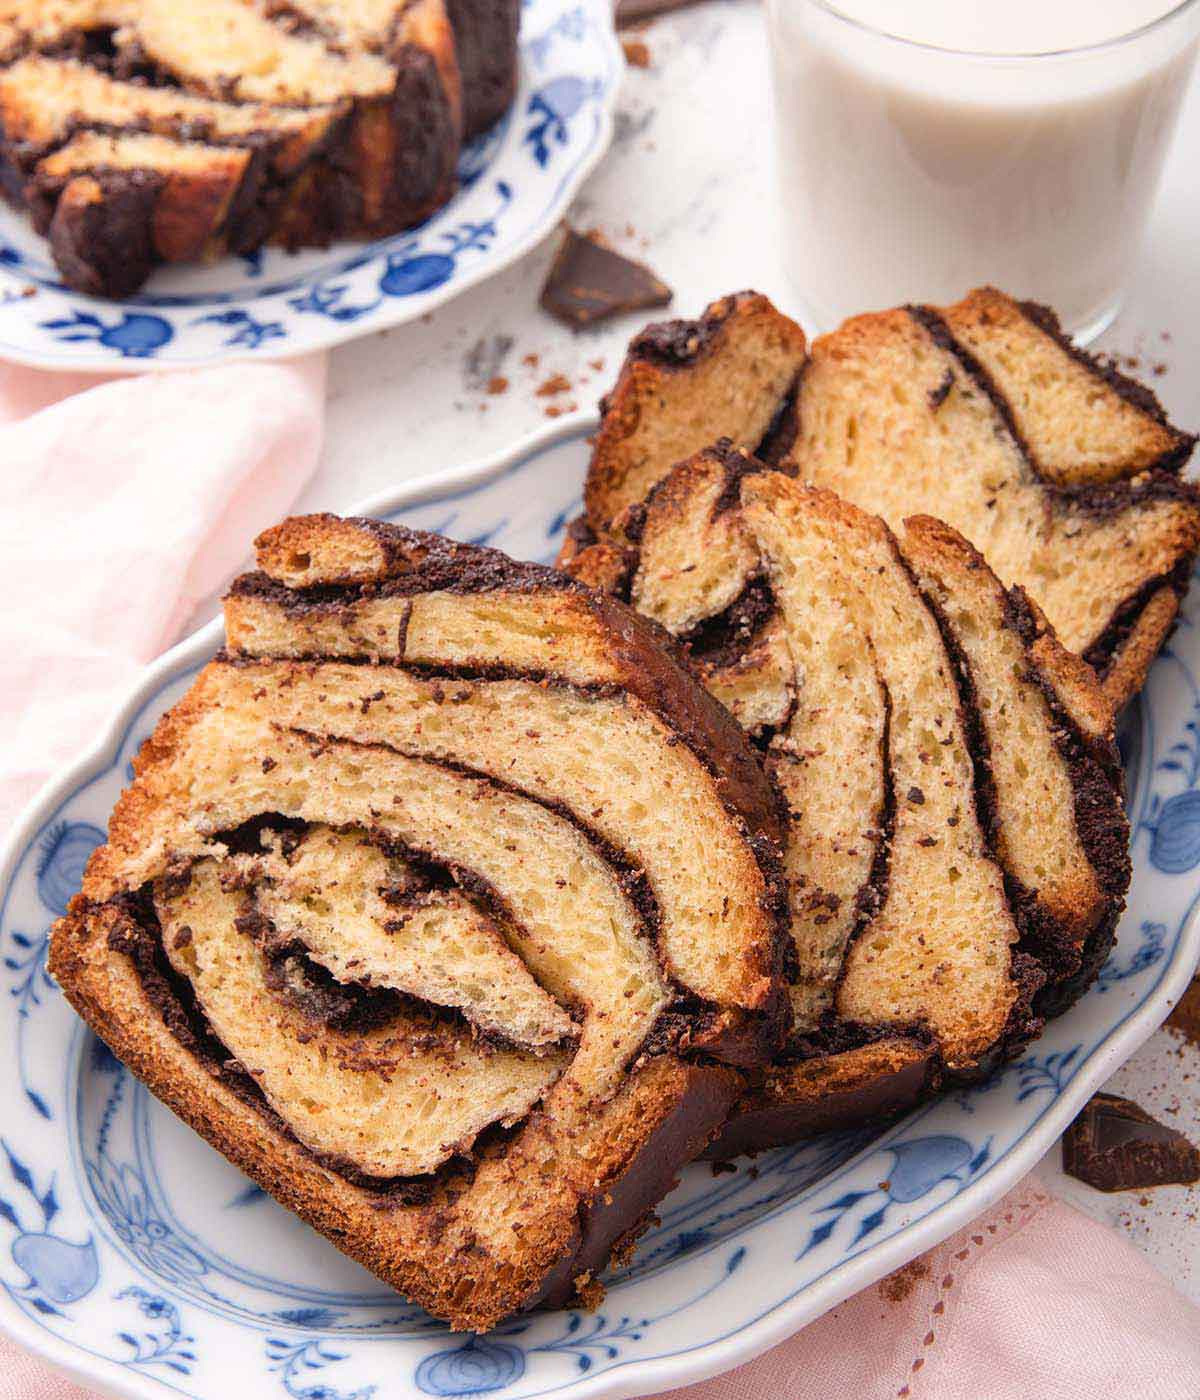 A blue and white platter with three slices of babka beside a glass of milk.